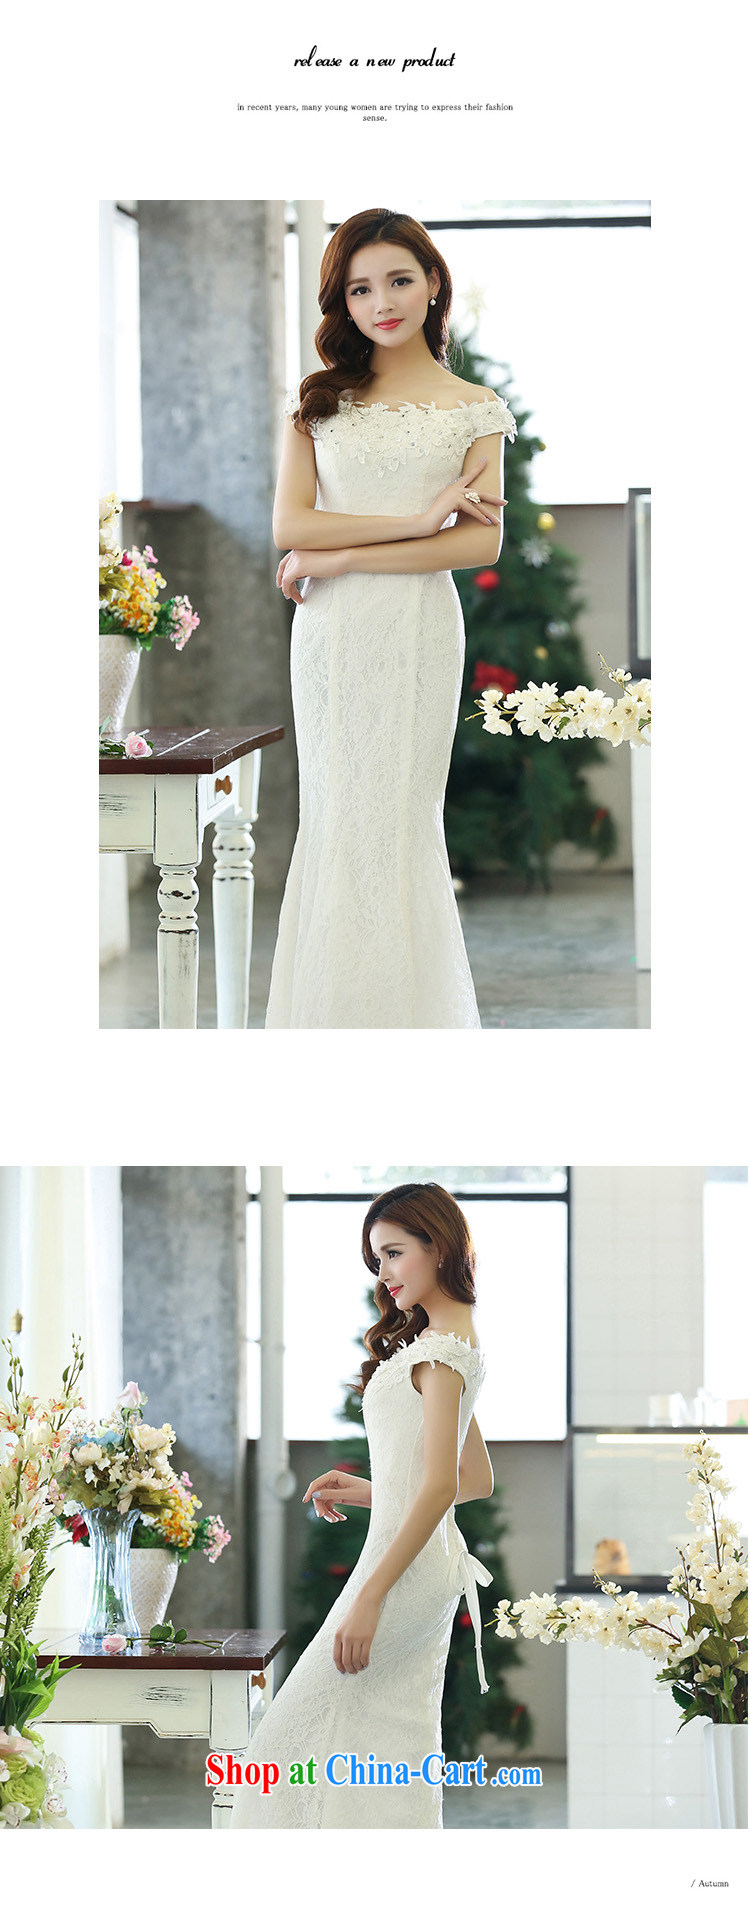 Caesar 175 wedding dresses new 2015 red long bridal wedding dress caesar 175 wedding dresses new 2015 red long bridal wedding dress girl toast serving bridesmaid clothing ombrellifo Choice Image